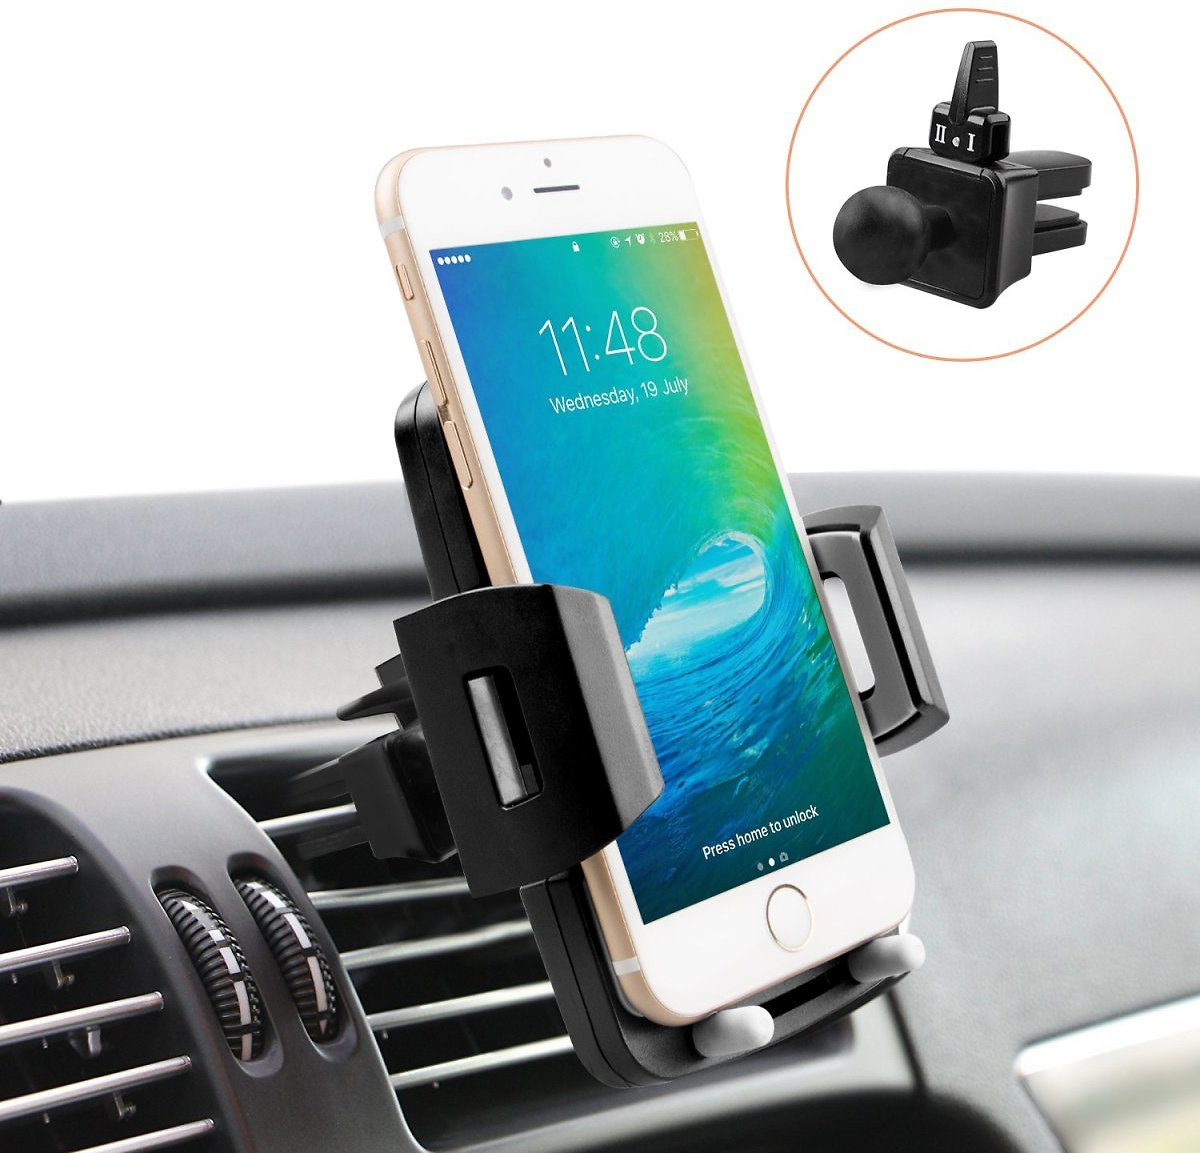 Universal Car Holder - Cell Phone Holder for Car - Quntis Phone Holder Car Mount - Car Air Vent Holder Cradle - 360 Rotation Cell Phone Mount Compatible with Samsung Galaxy LG Motorola Smartphones